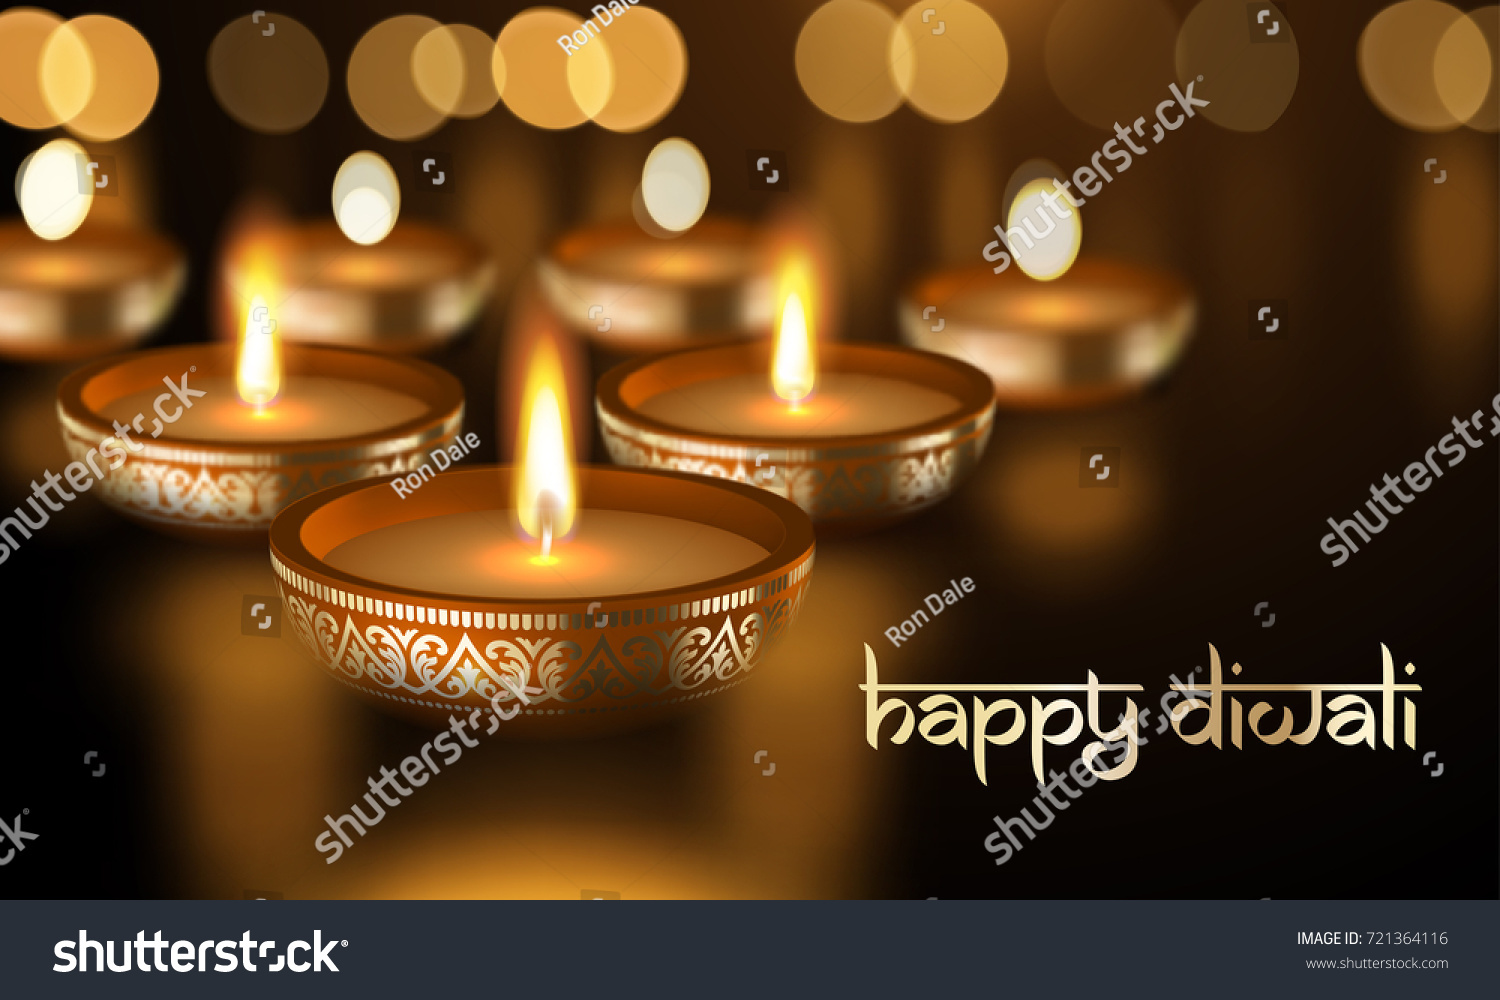 Happy diwali holiday greeting card template stock vector 721364116 happy diwali holiday greeting card template of gold candle light flame in golden premium bowl with kristyandbryce Gallery